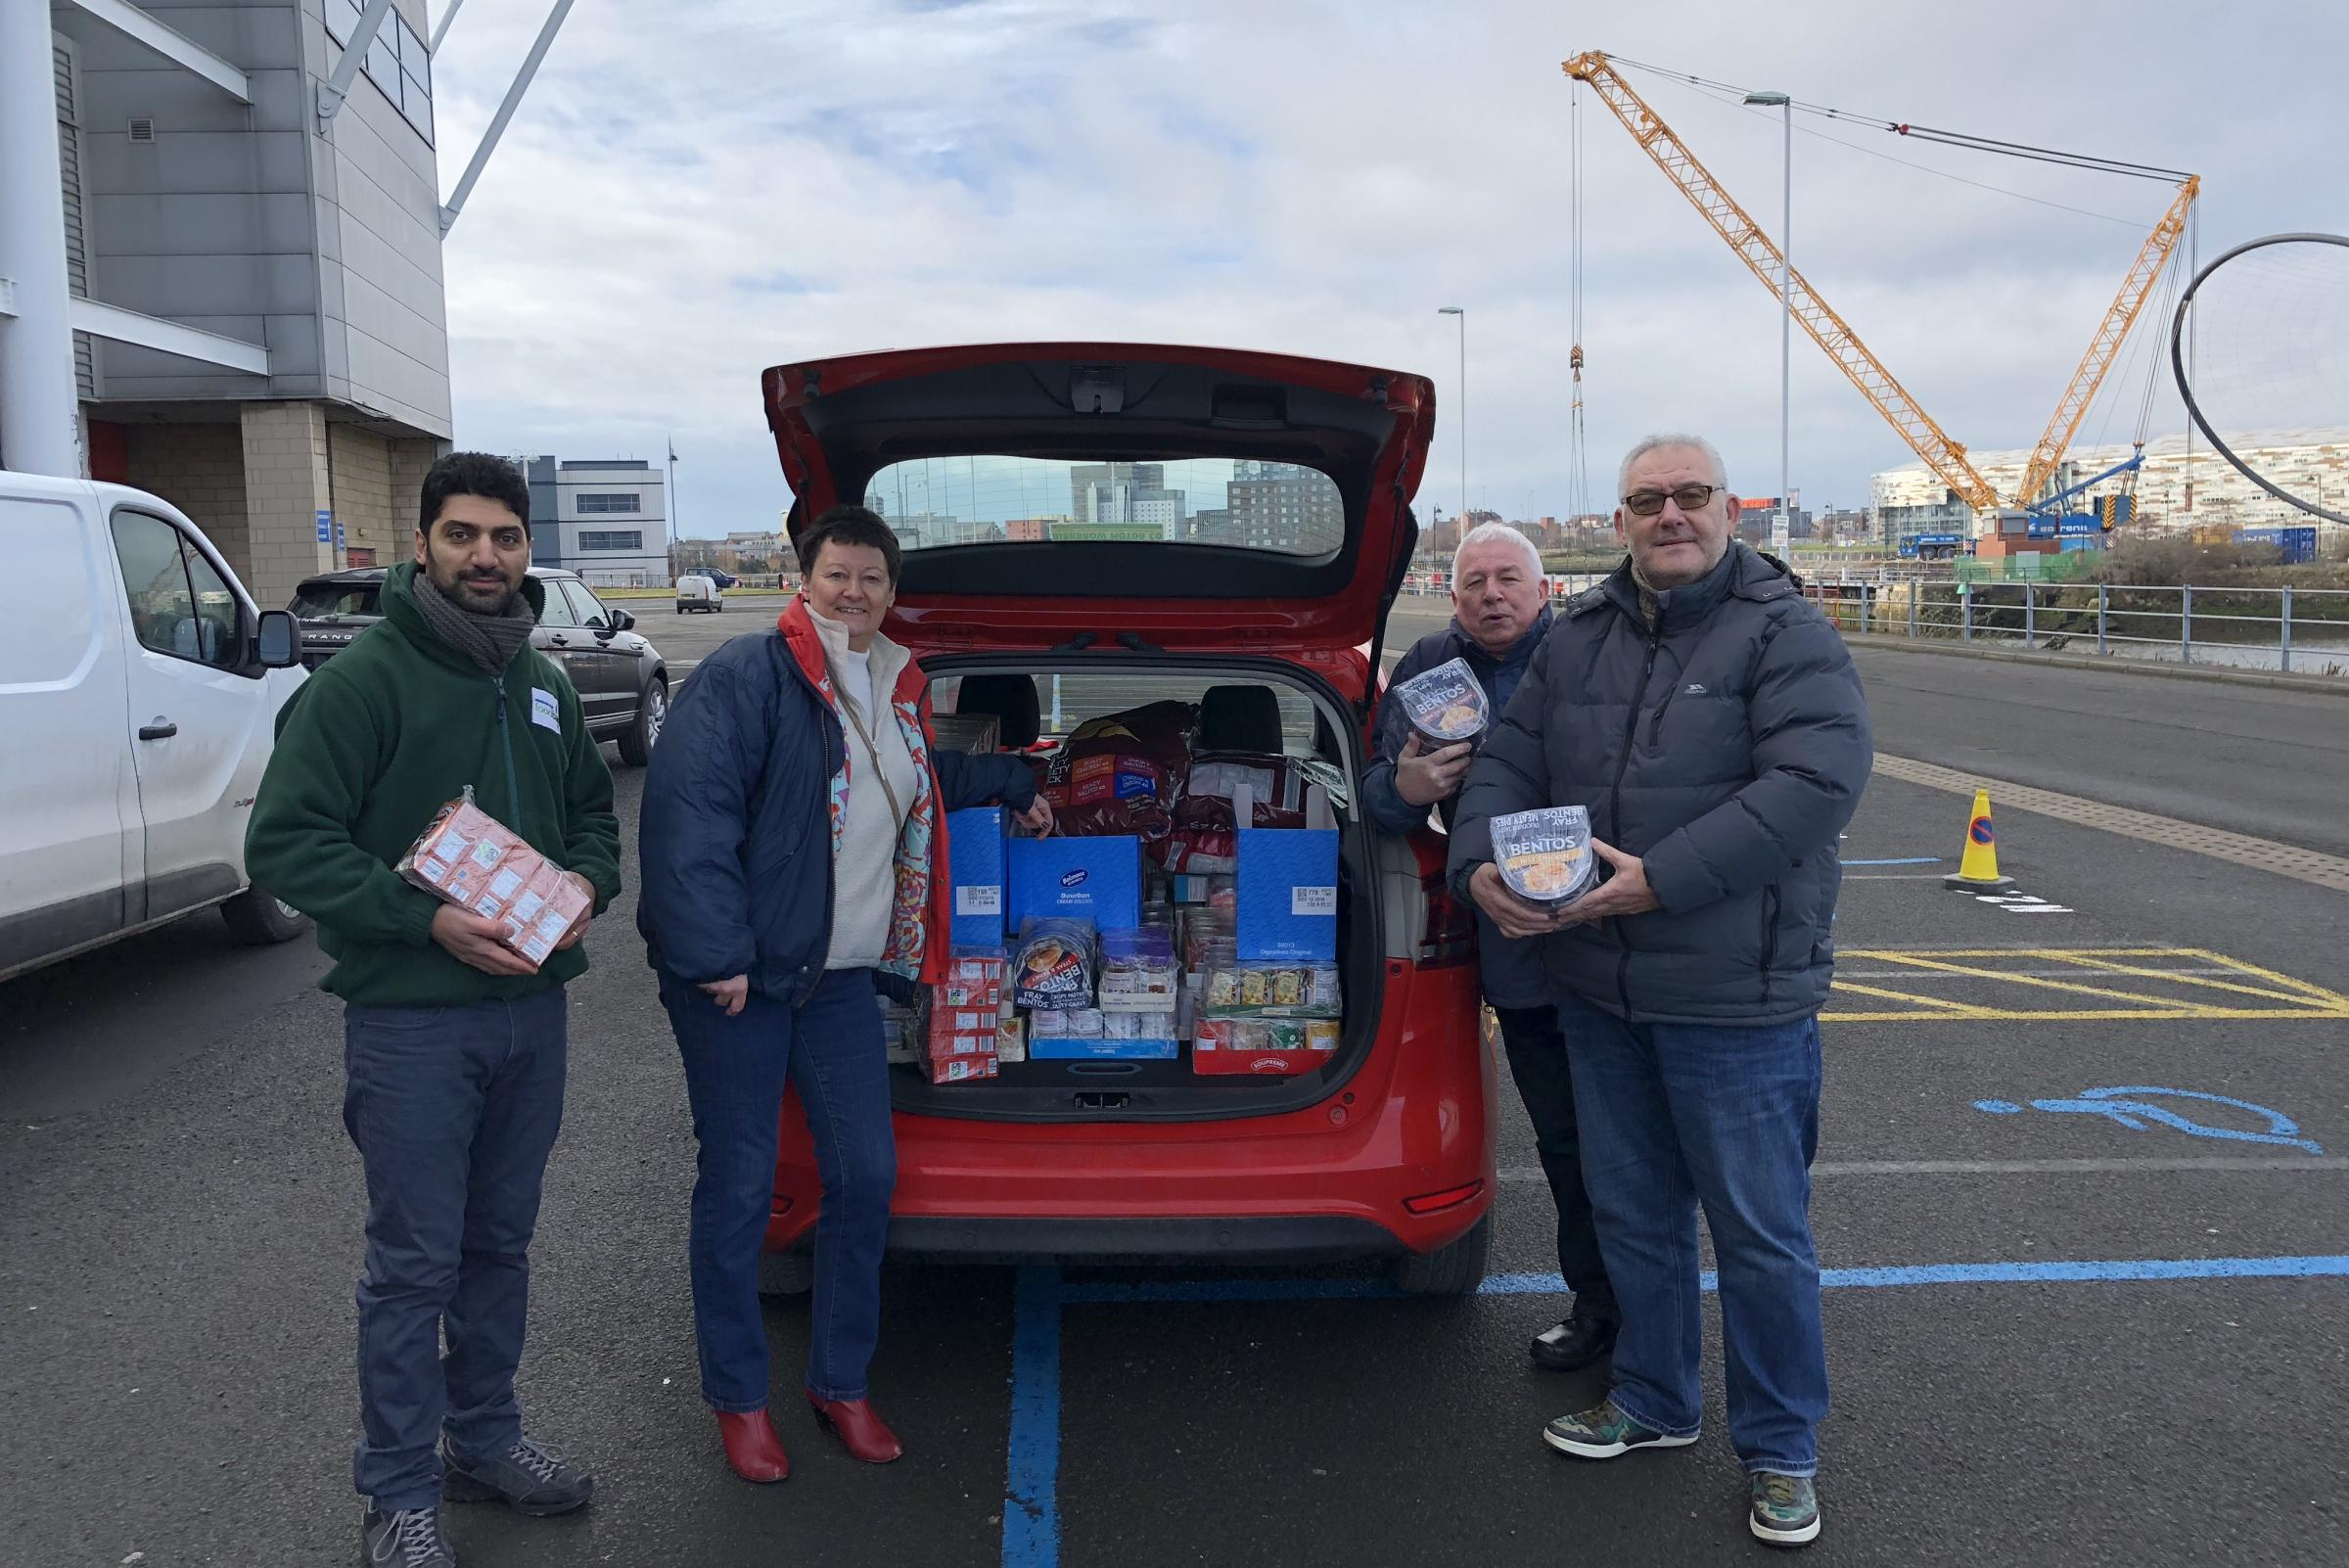 Middlesbrough fans urged to support foodbank with donations